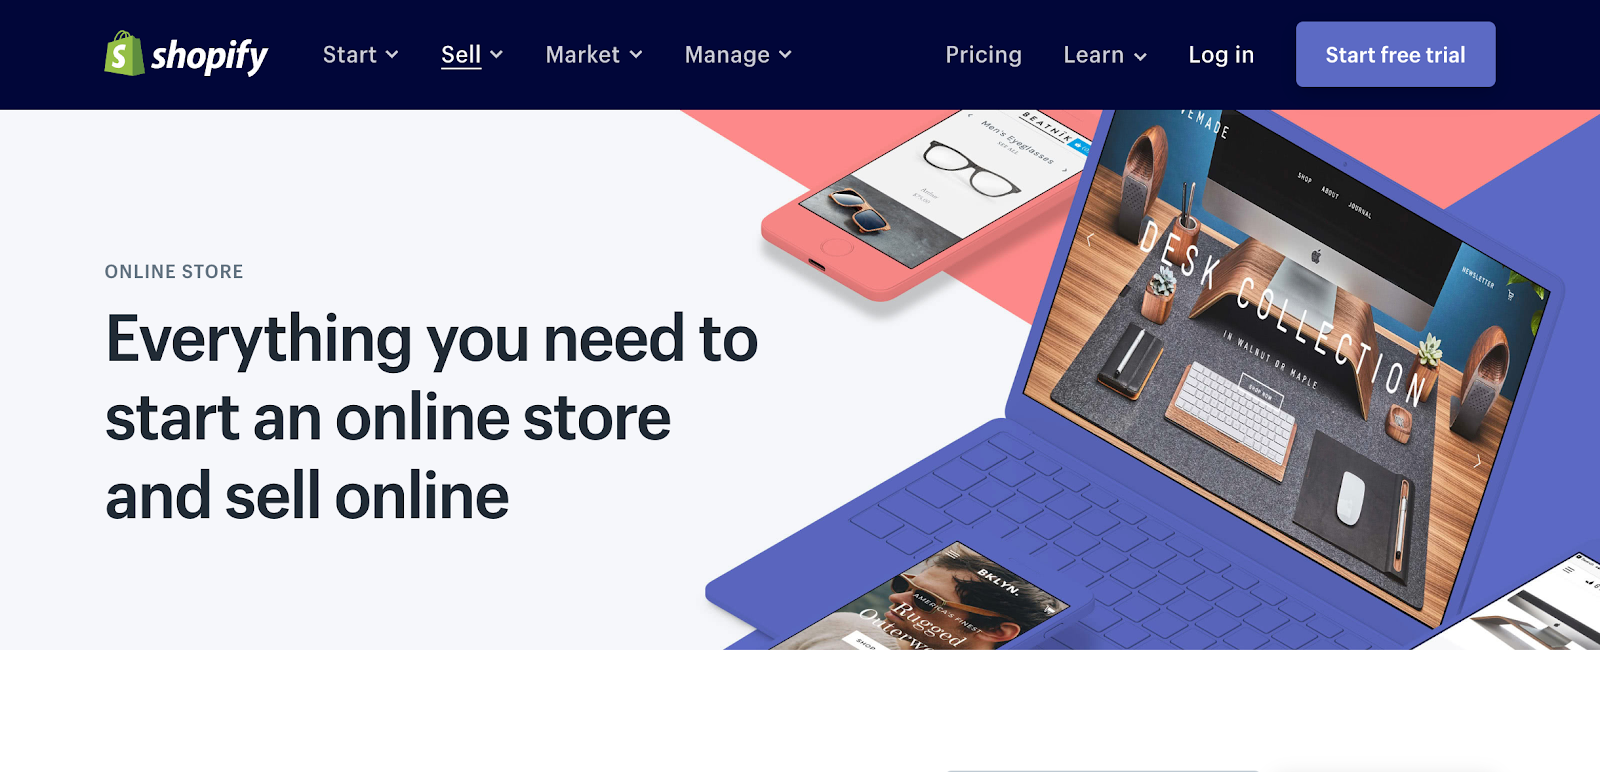 AwesomeScreenshot Sell Products Online Start an Online Store Free Trial 2019 07 10 12 07 29